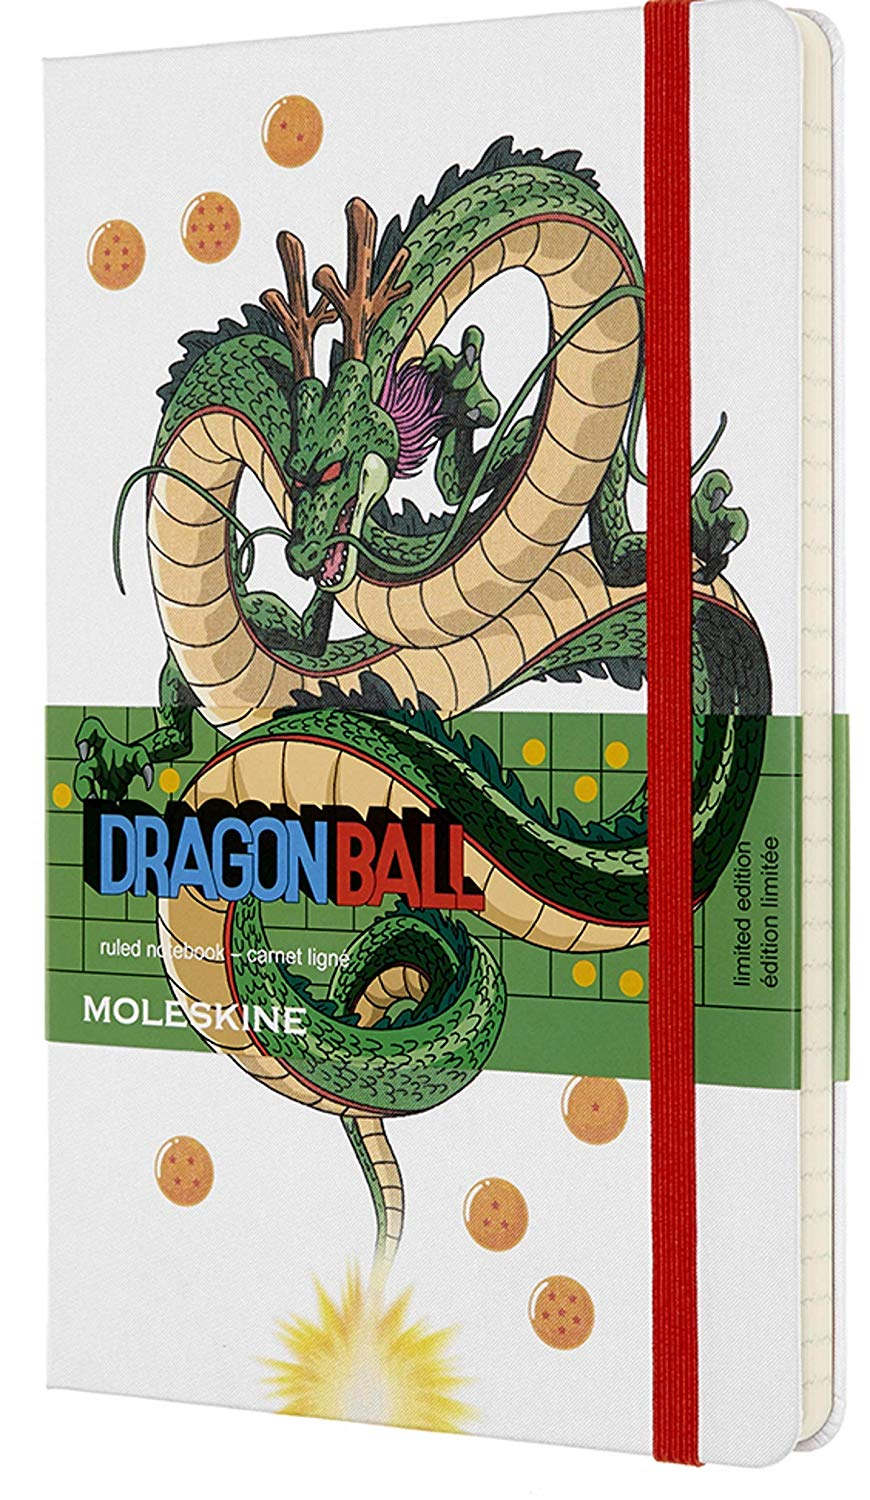 Carnet - Moleskine Dragonball Limited Edition Ruled Notebook - Large, Hard Cover, White - Dragon thumbnail